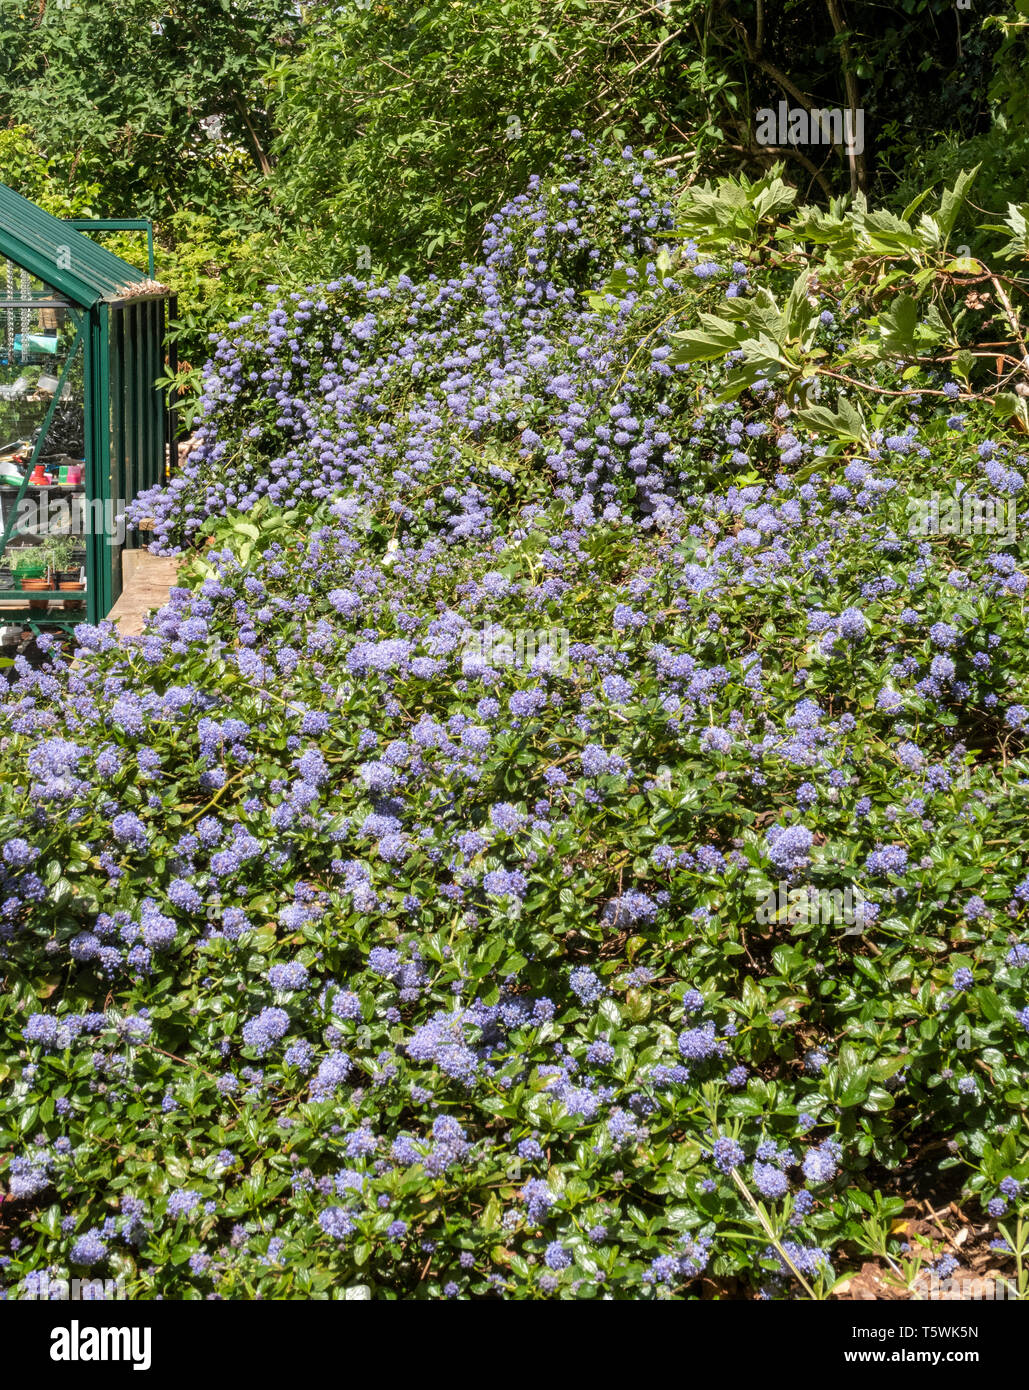 Ceanothus thyrsiflorus repens, growing on top of a bank beside a greenhouse. Stock Photo